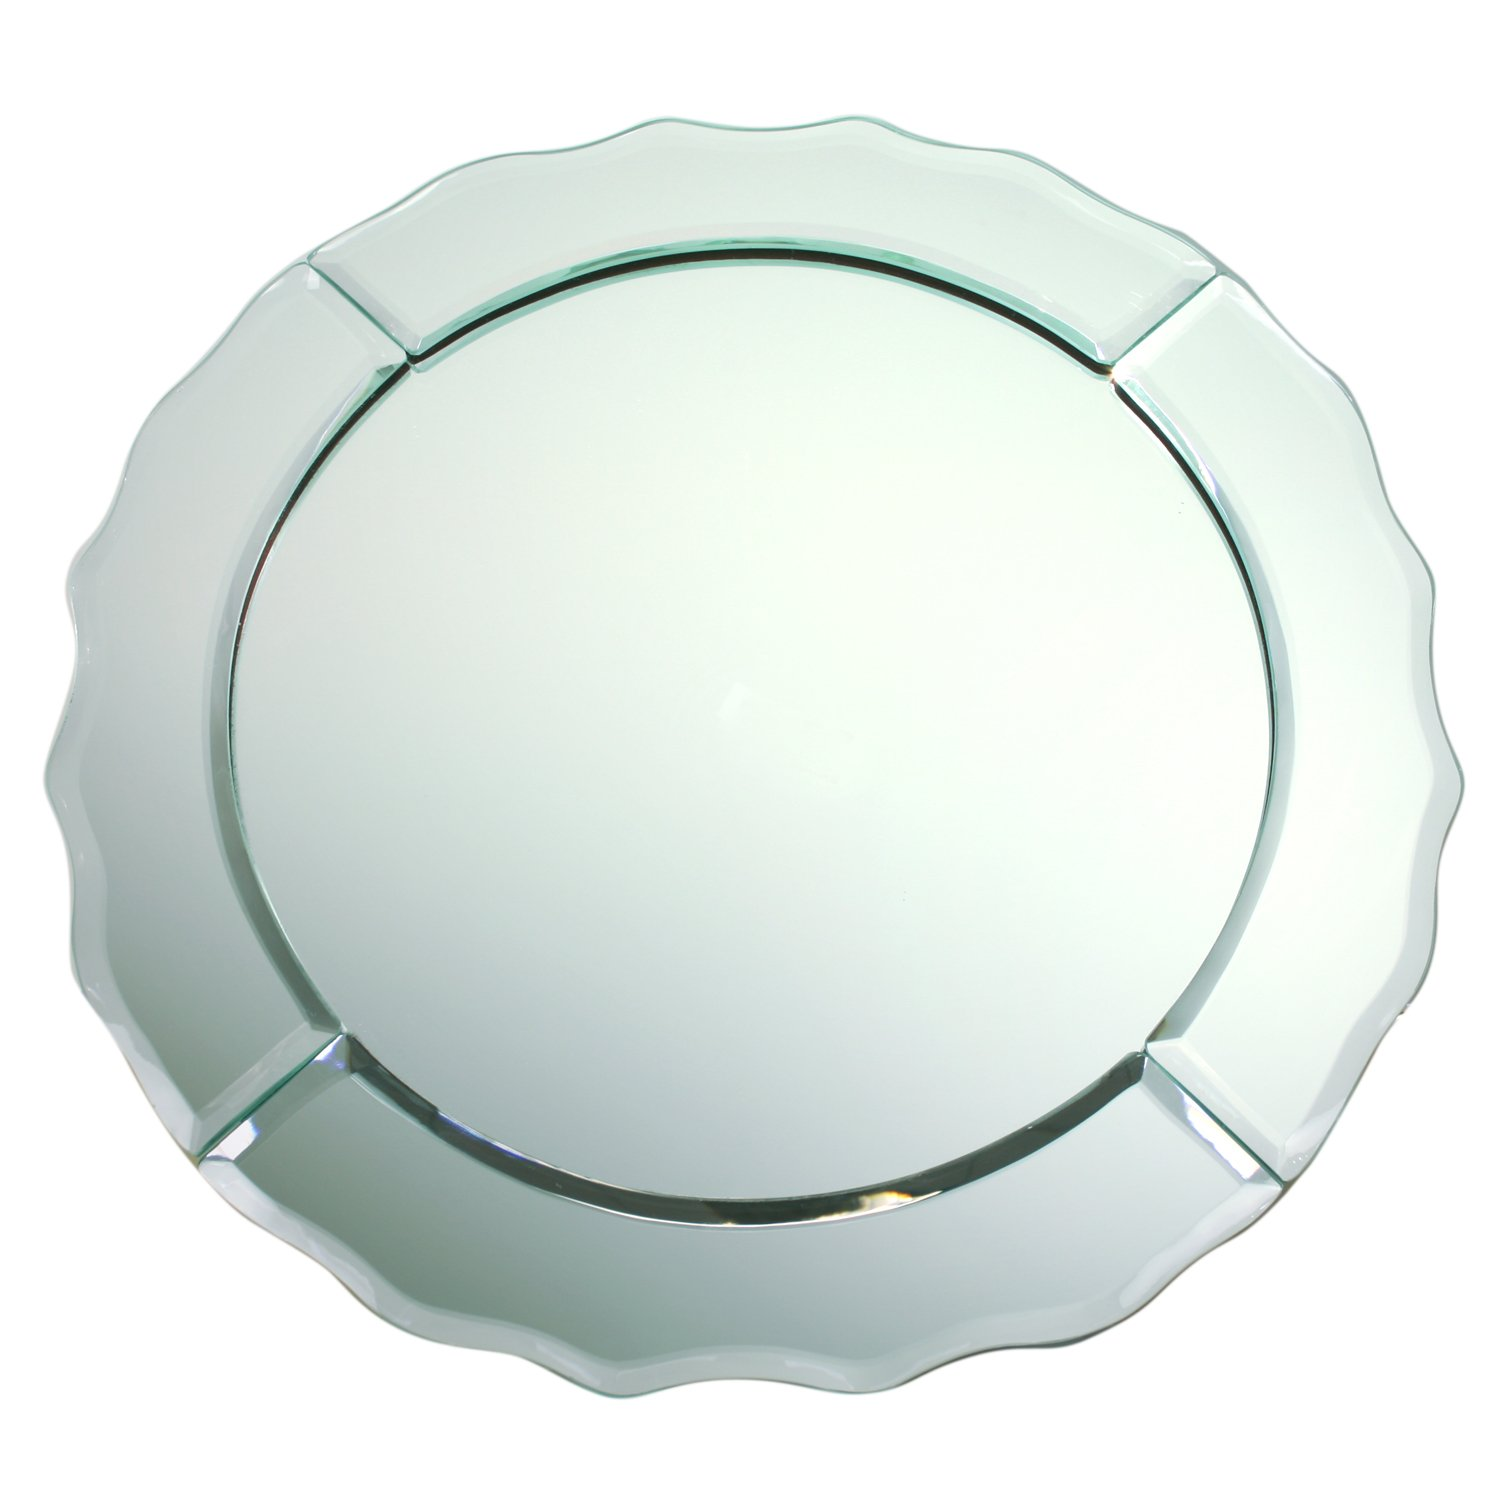 ChargeIt by Jay Scallop Edge Round 13-Inch Mirror Glass Charger Plate.